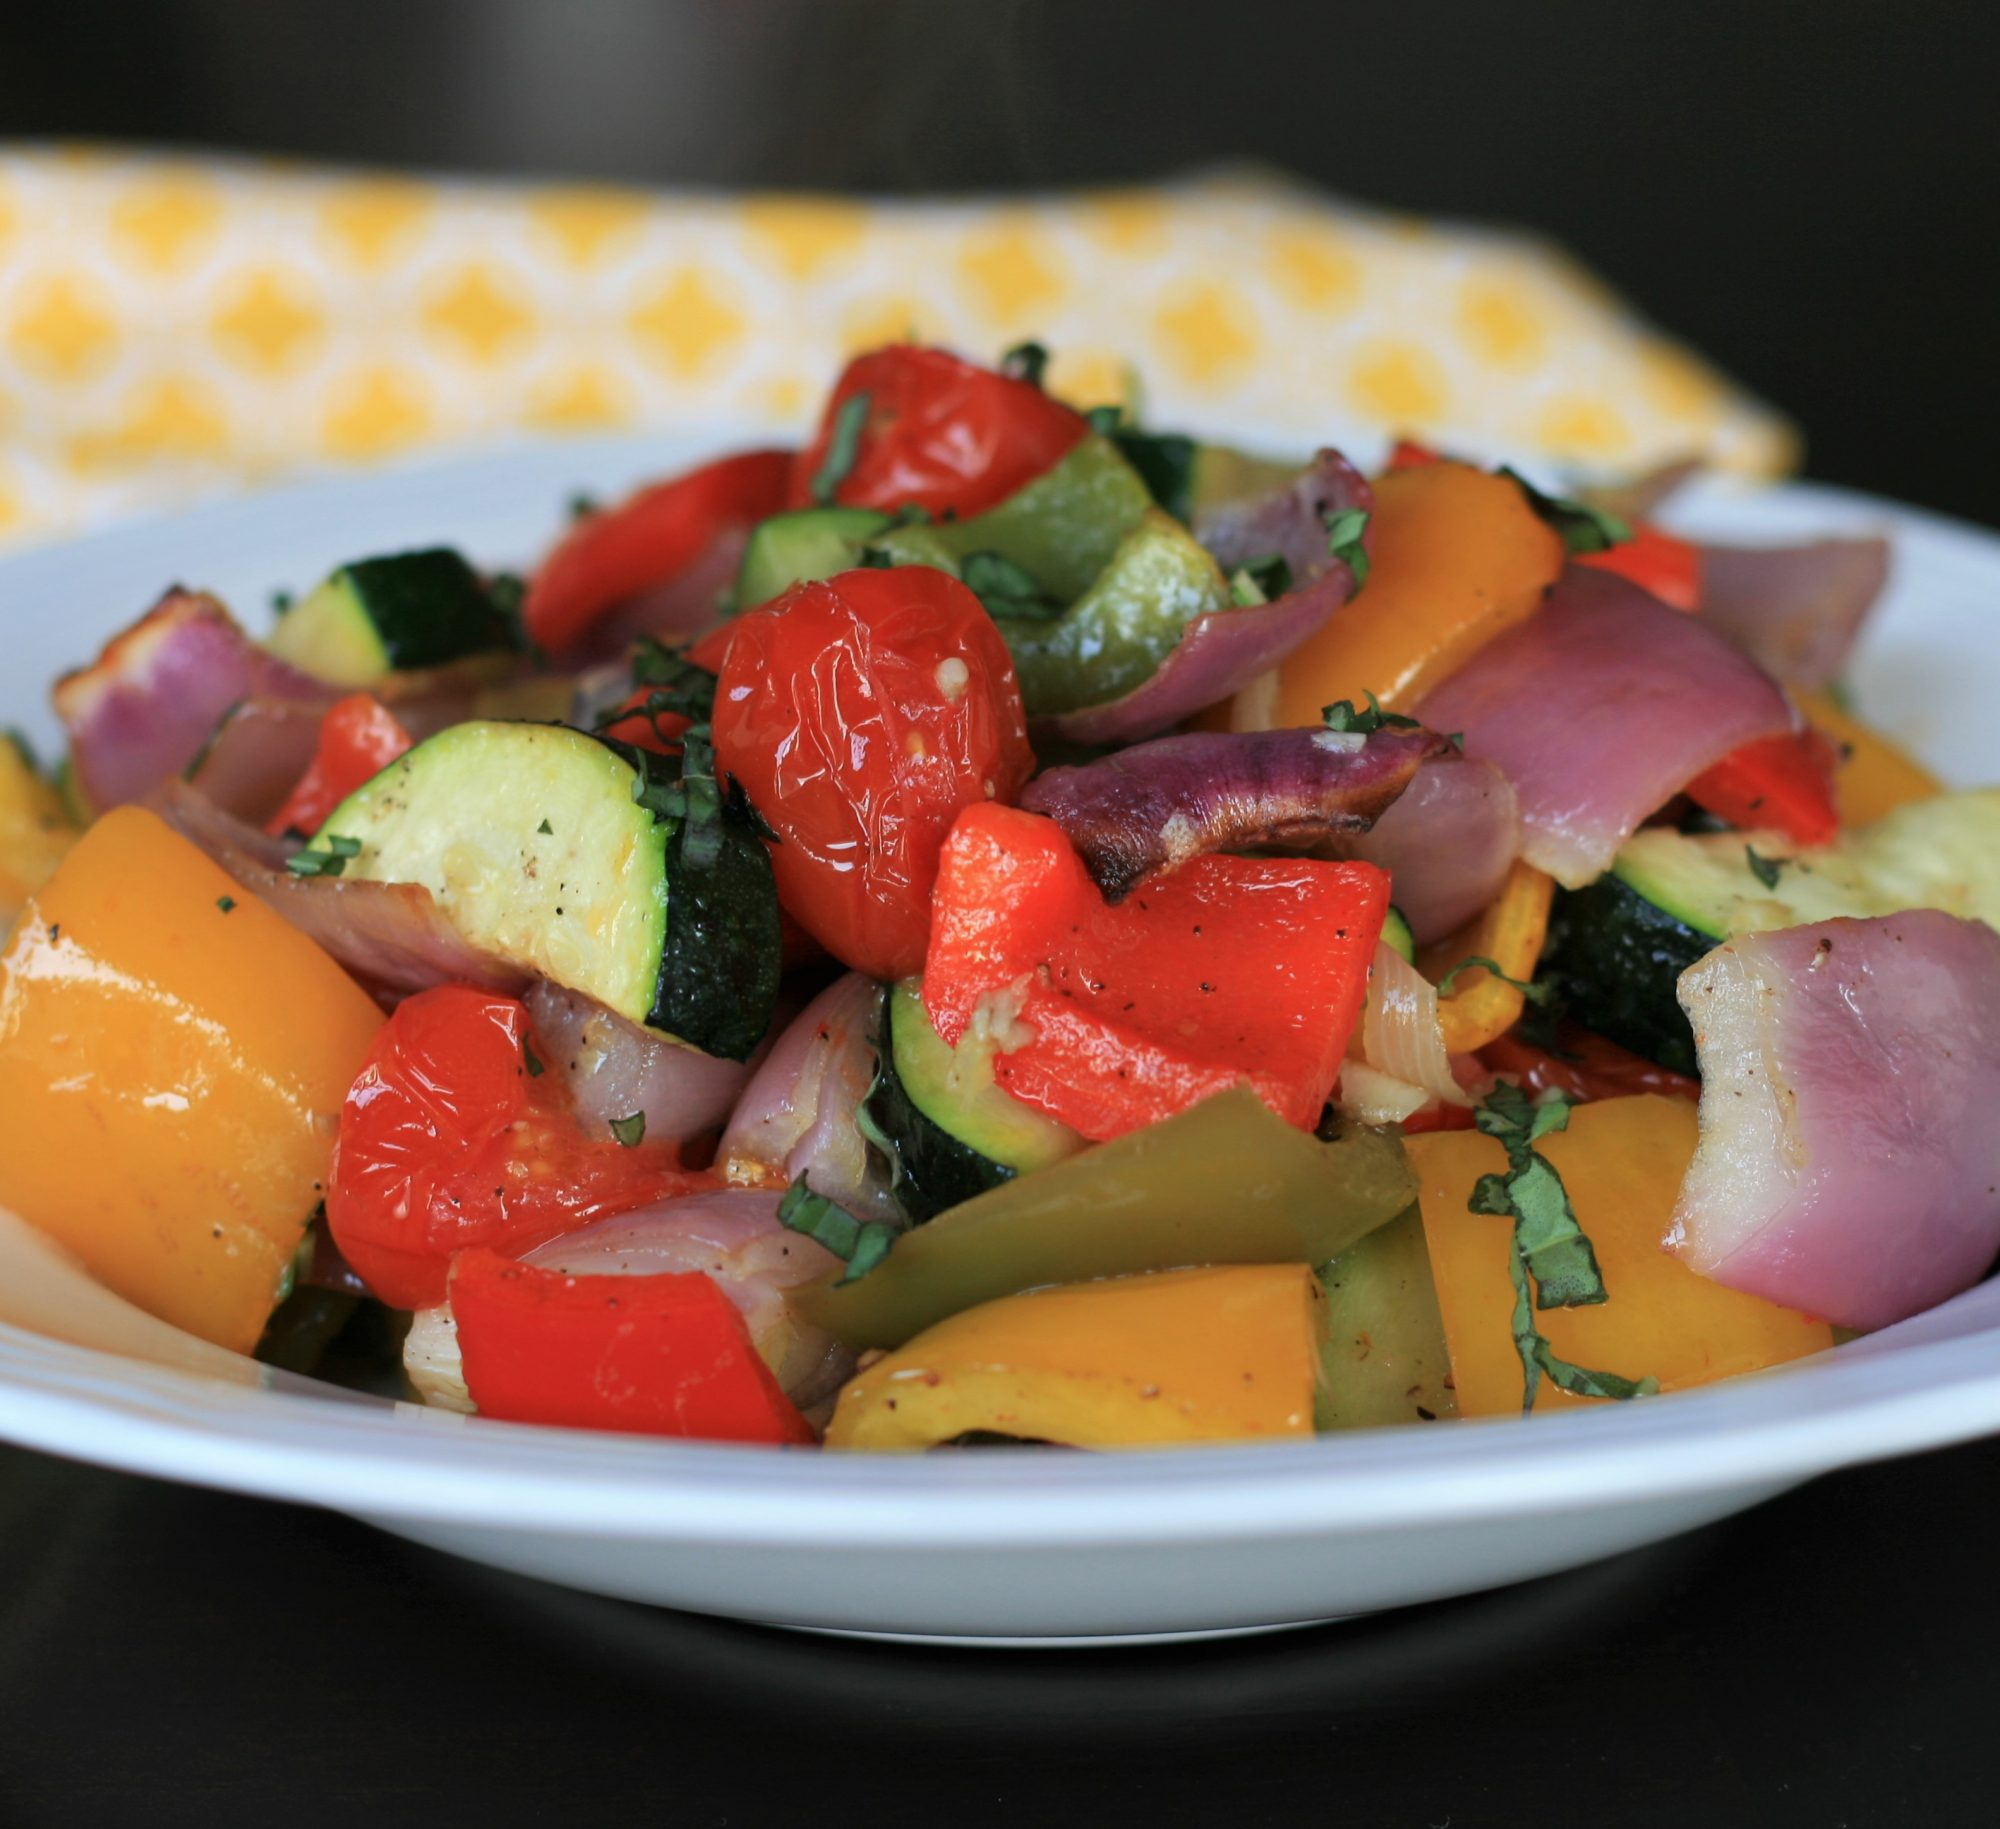 Sheet Pan Roasted Mediterranean Vegetables